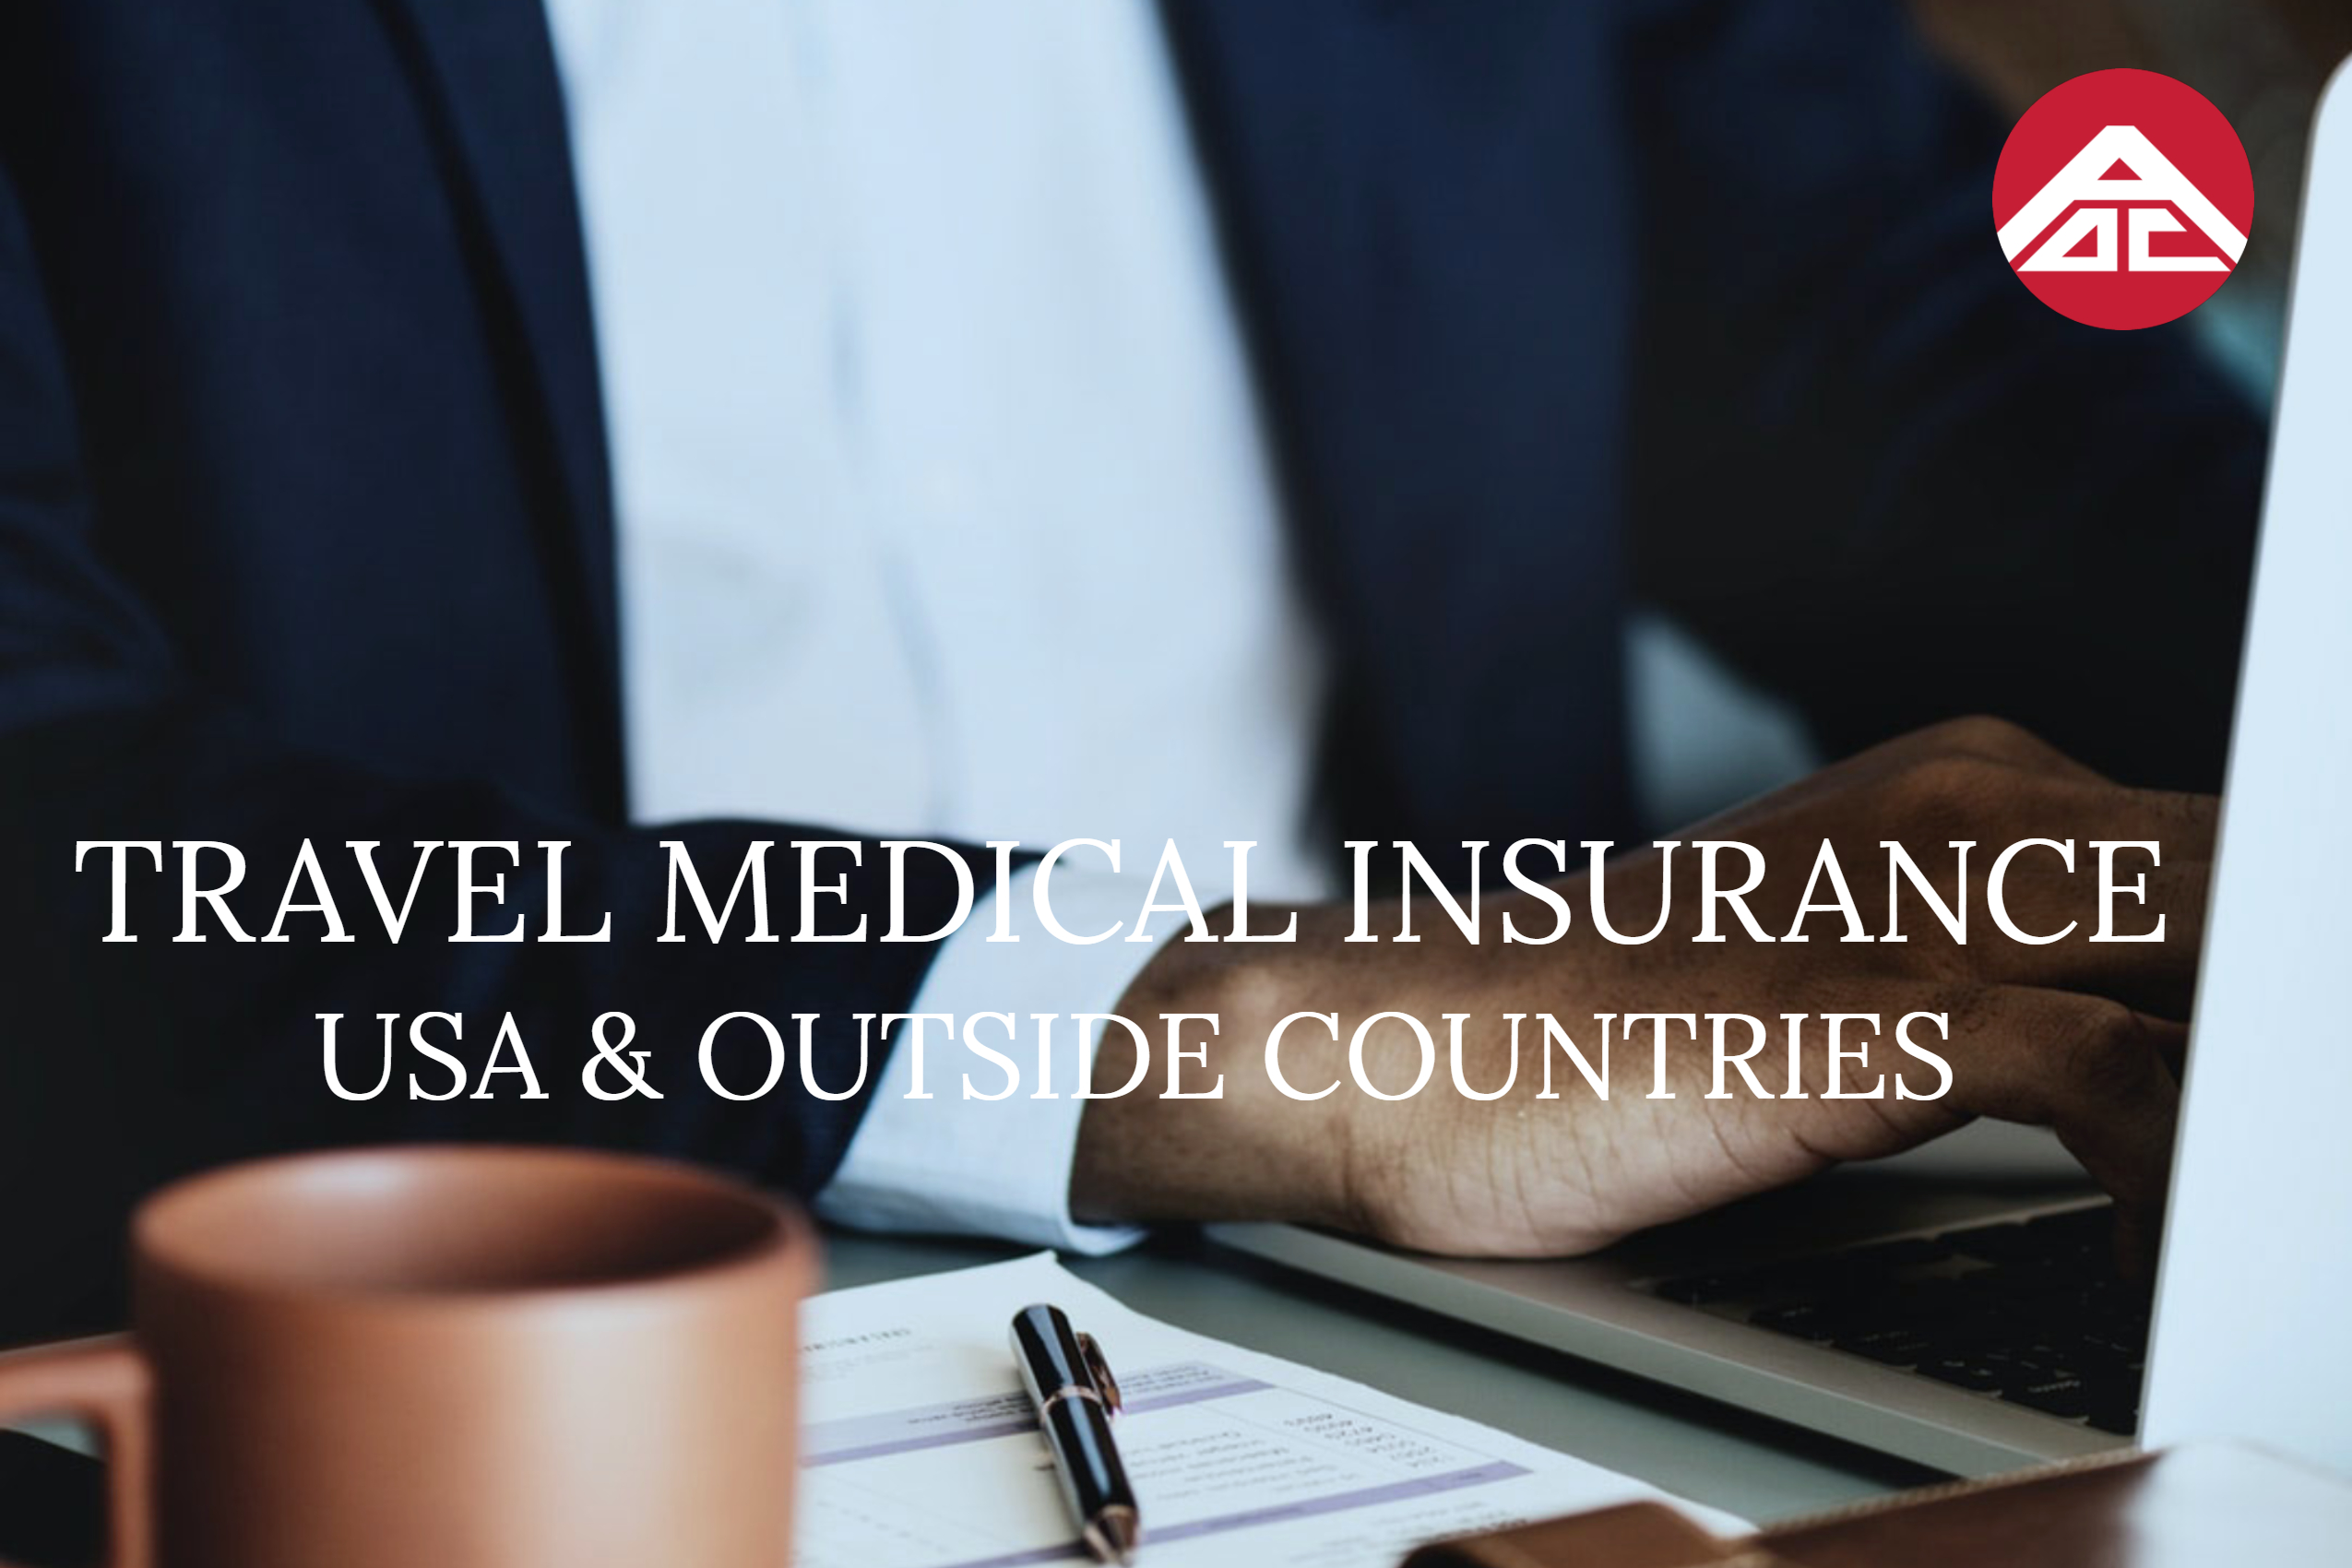 Aoc_insurance_travel_medical_insurance_usa_outside_countries.jpg